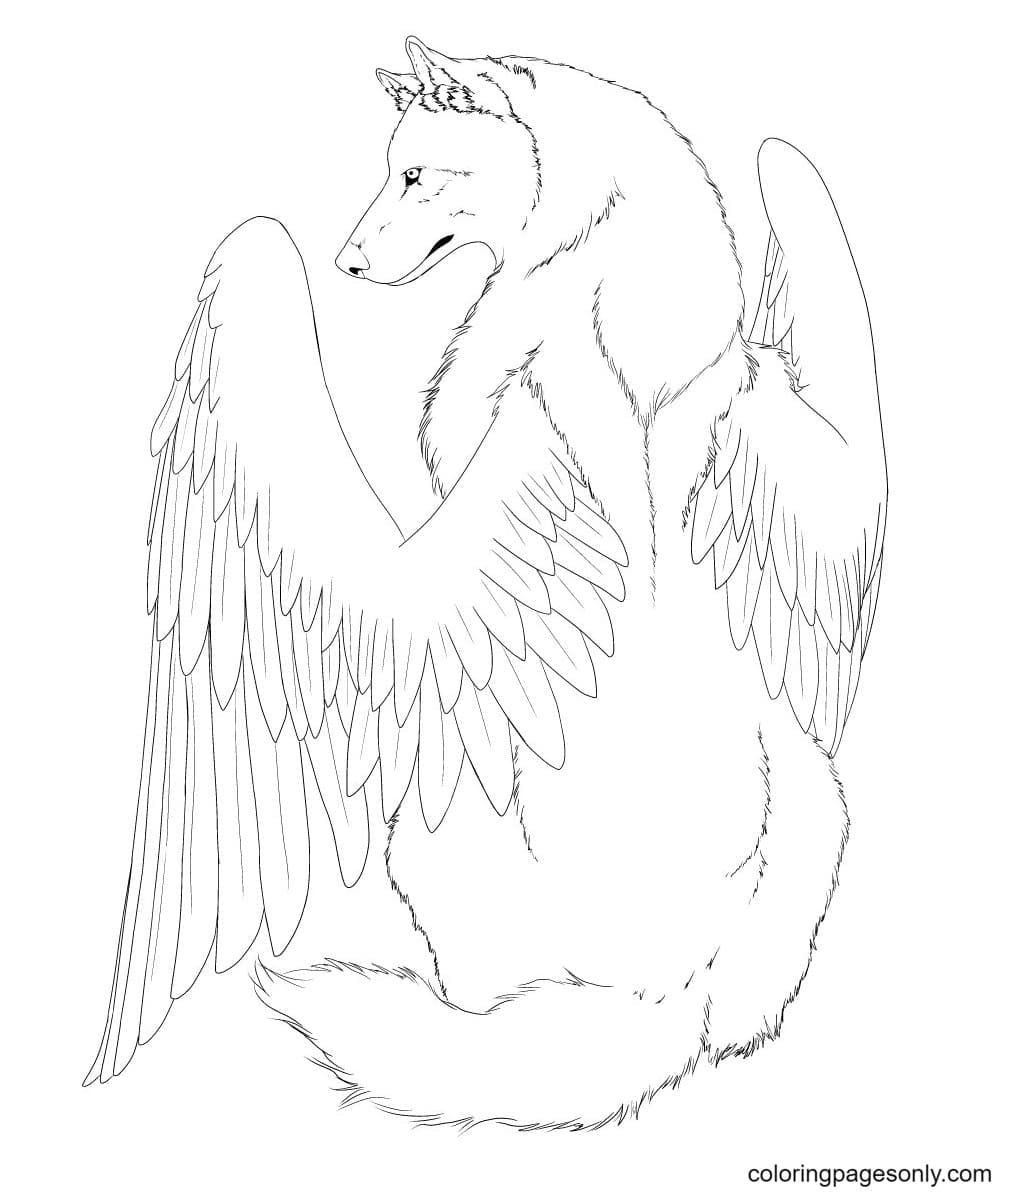 The Winged wolf is sitting Coloring Page